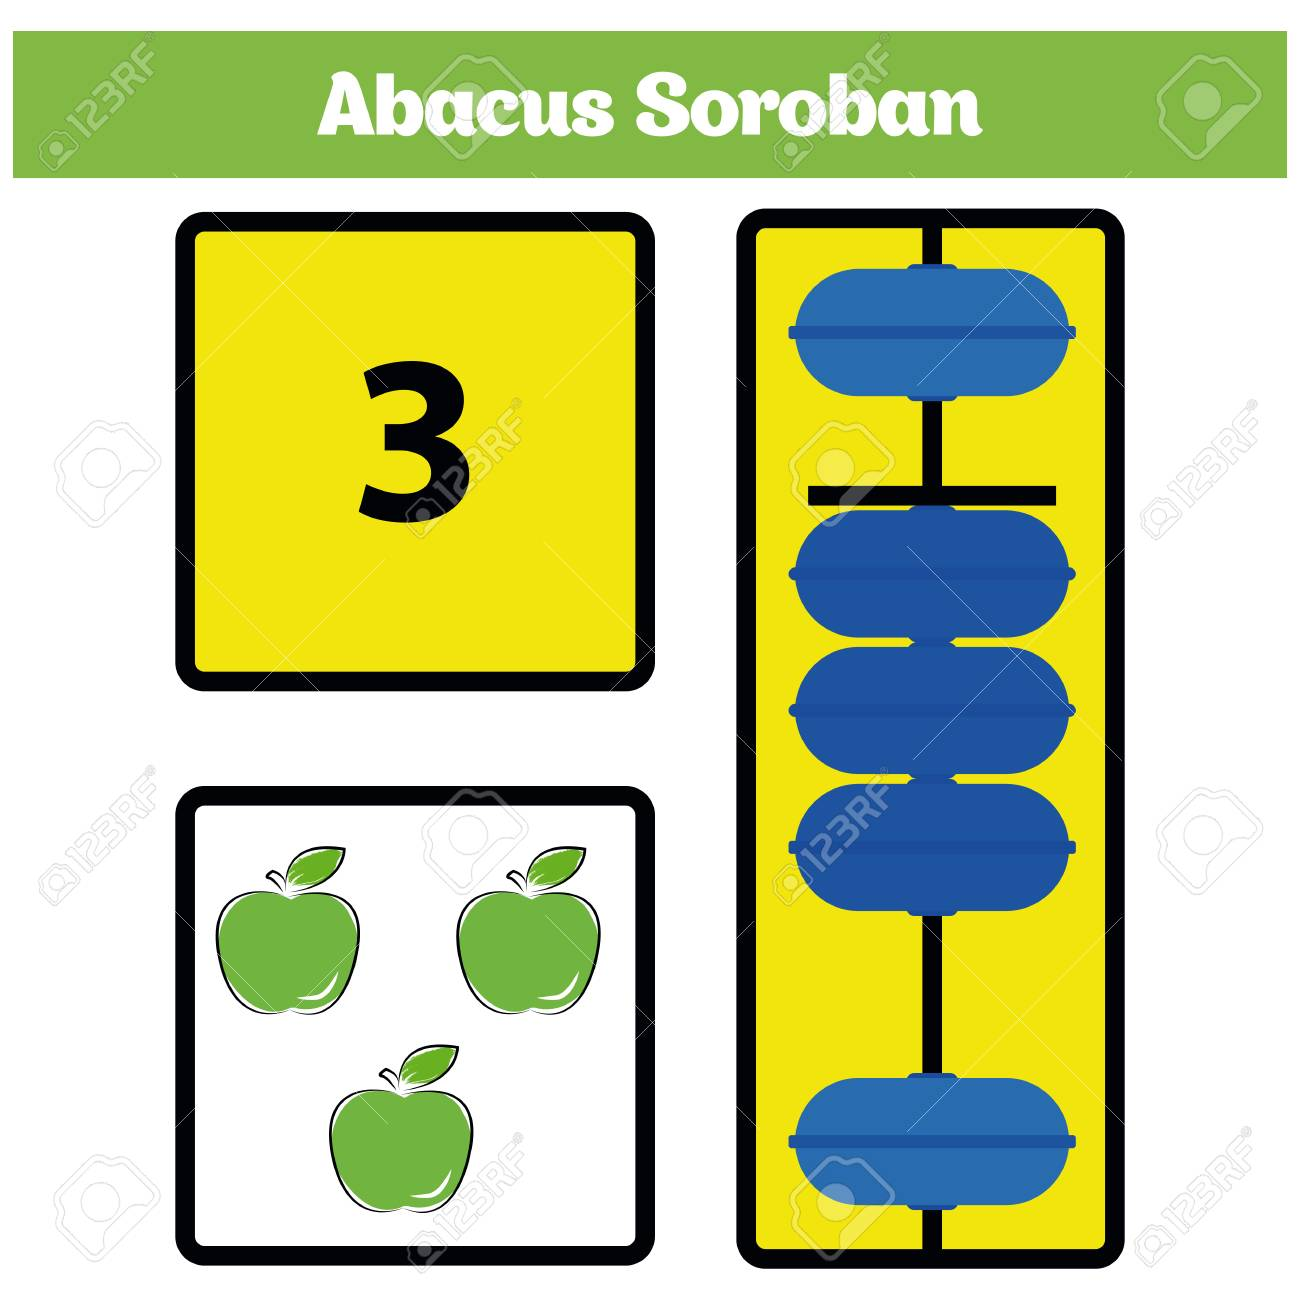 Worksheets Abacus Math Worksheets abacus soroban kids learn numbers with math worksheet for children vector illustration stock vector